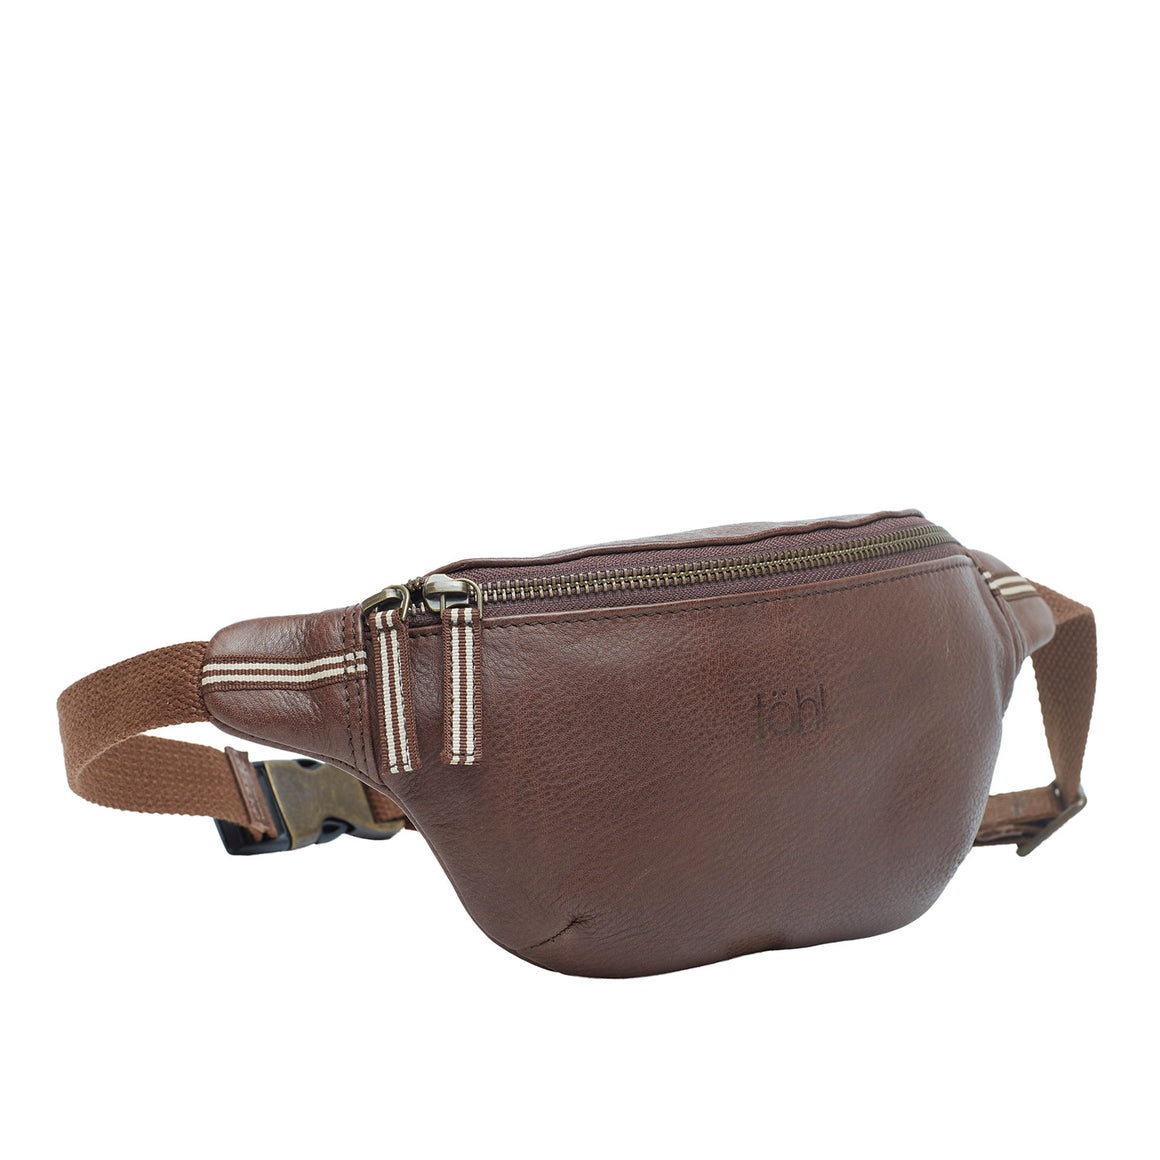 WP 0004 - TOHL PRONY MEN'S WAIST POUCHES - MUD